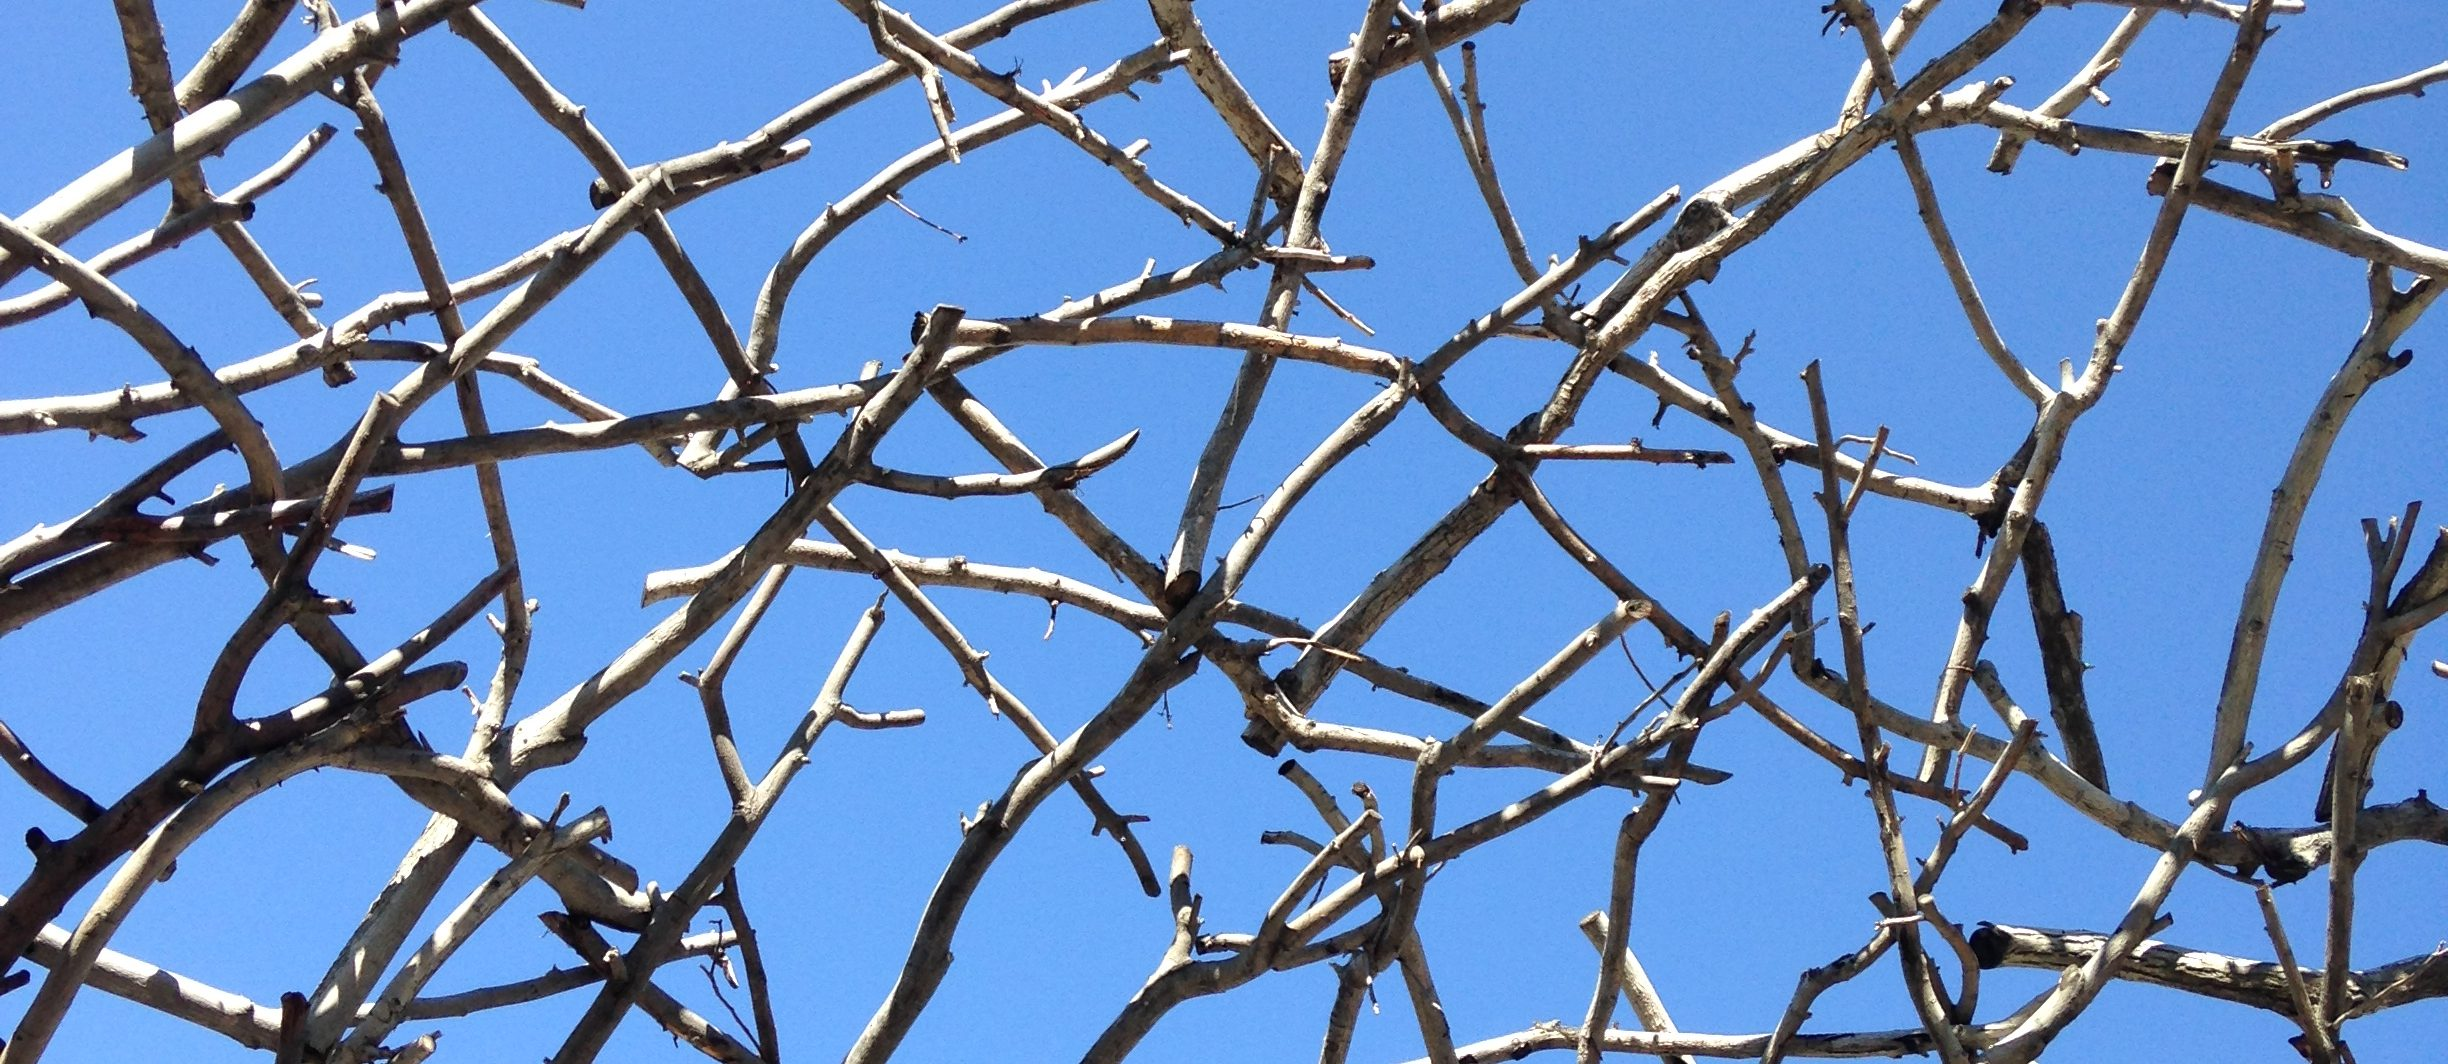 A thicket of sticks and a blue sky